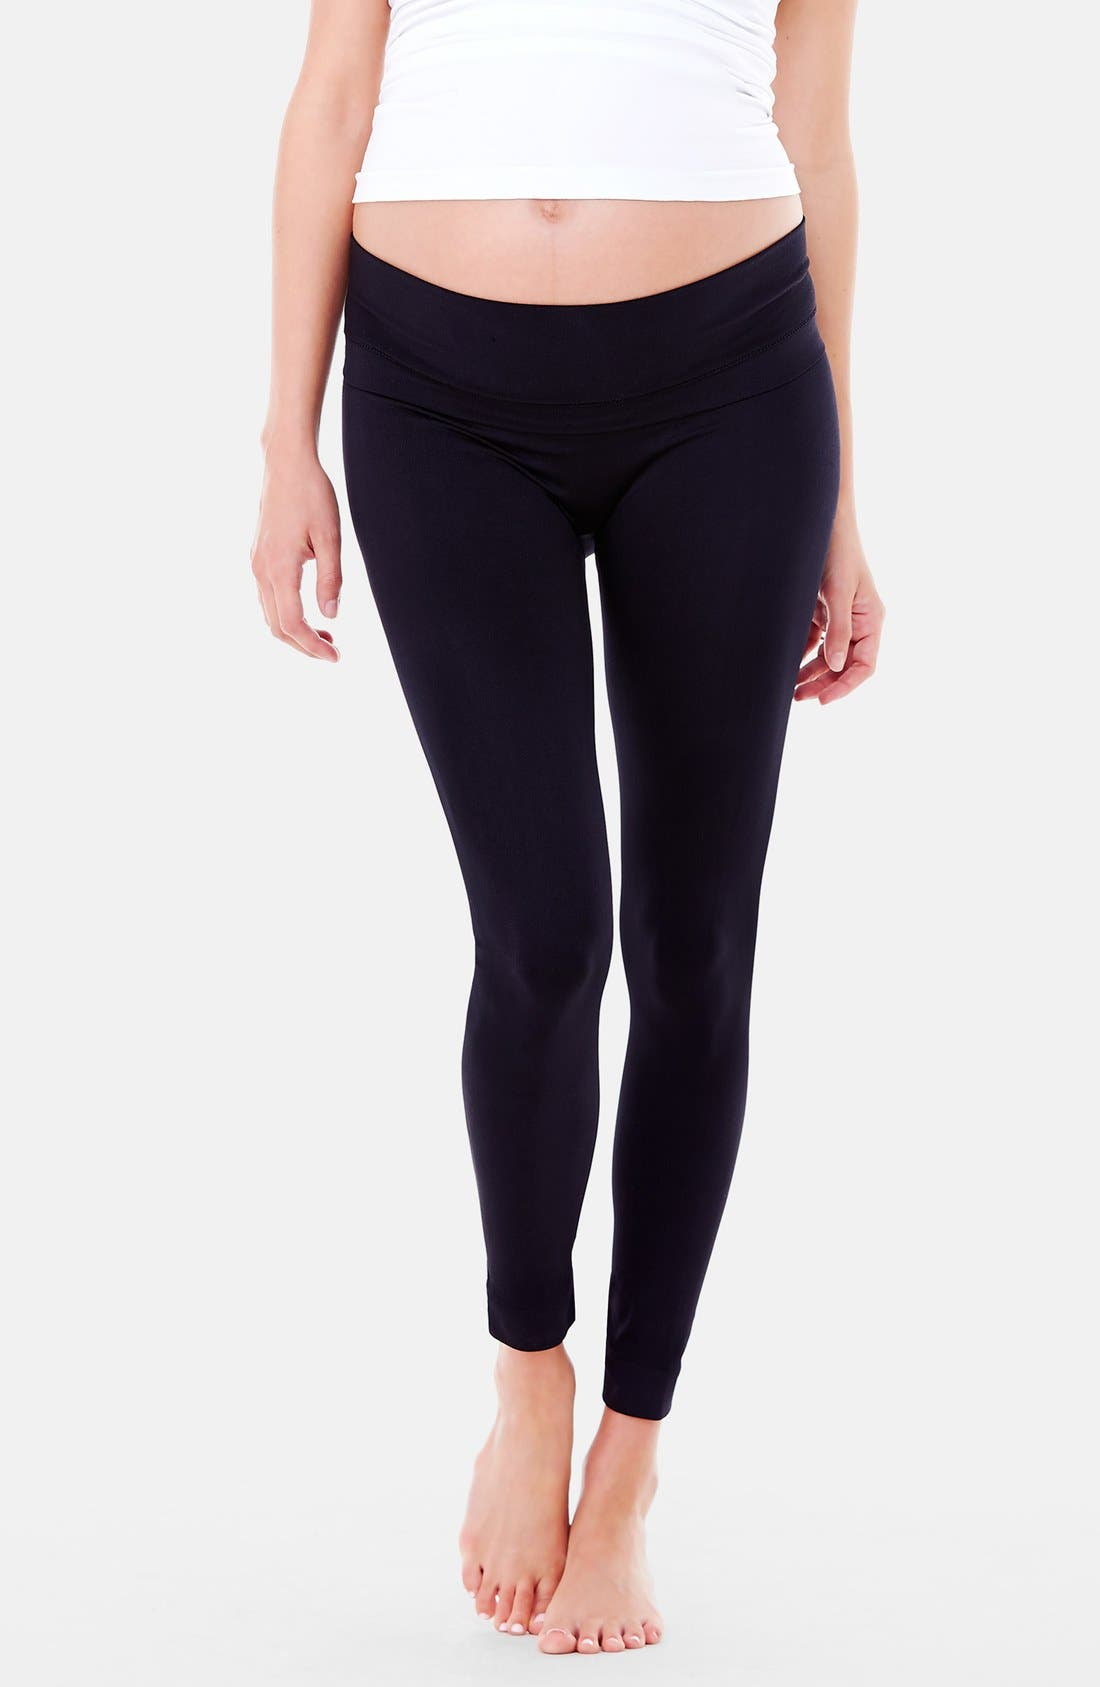 'Everyday' Seamless Maternity Leggings,                             Main thumbnail 1, color,                             001